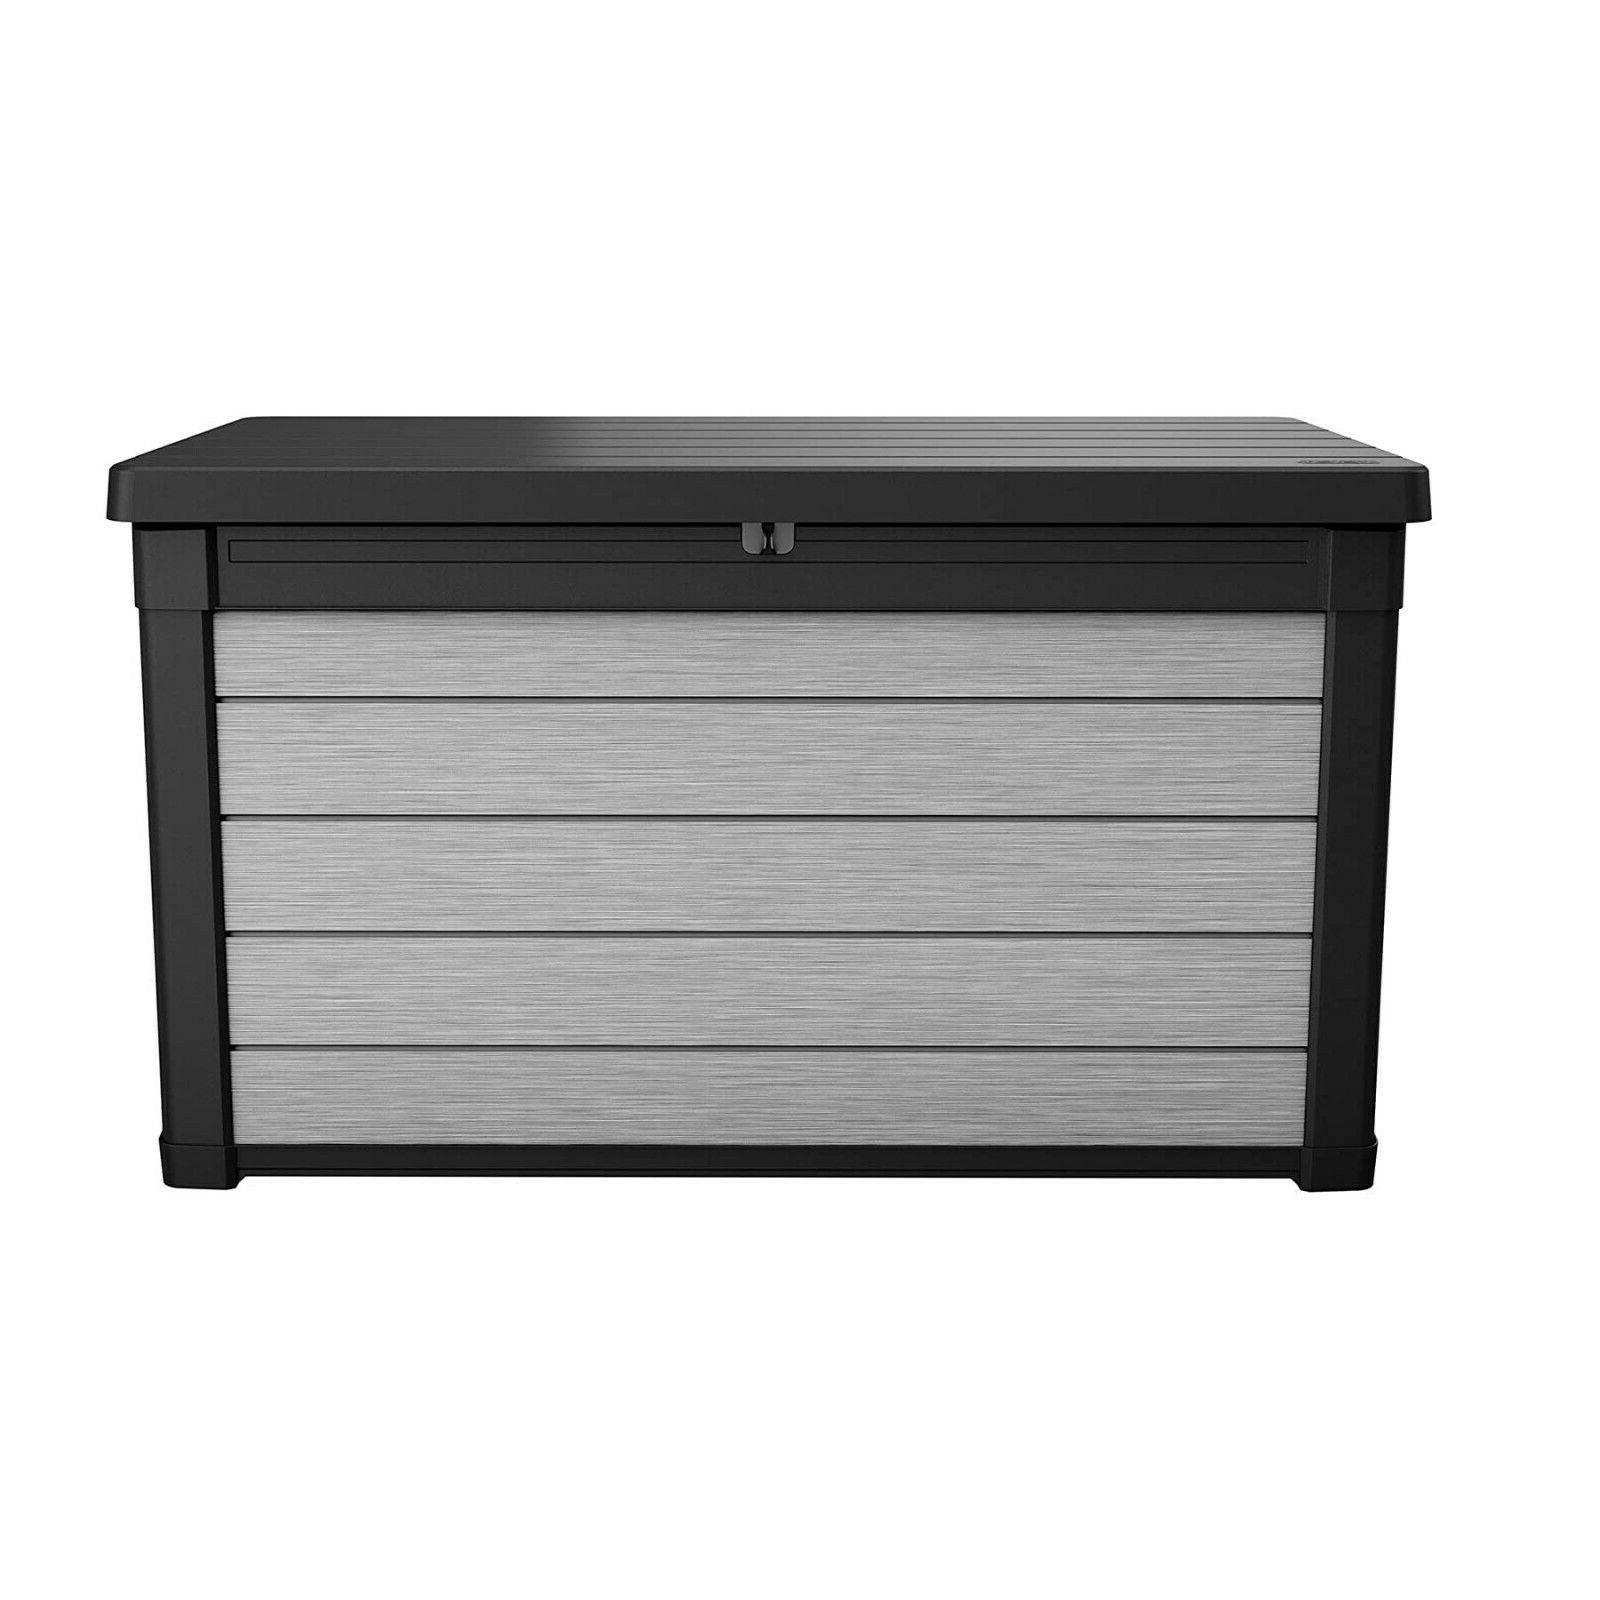 Keter Storage Box for